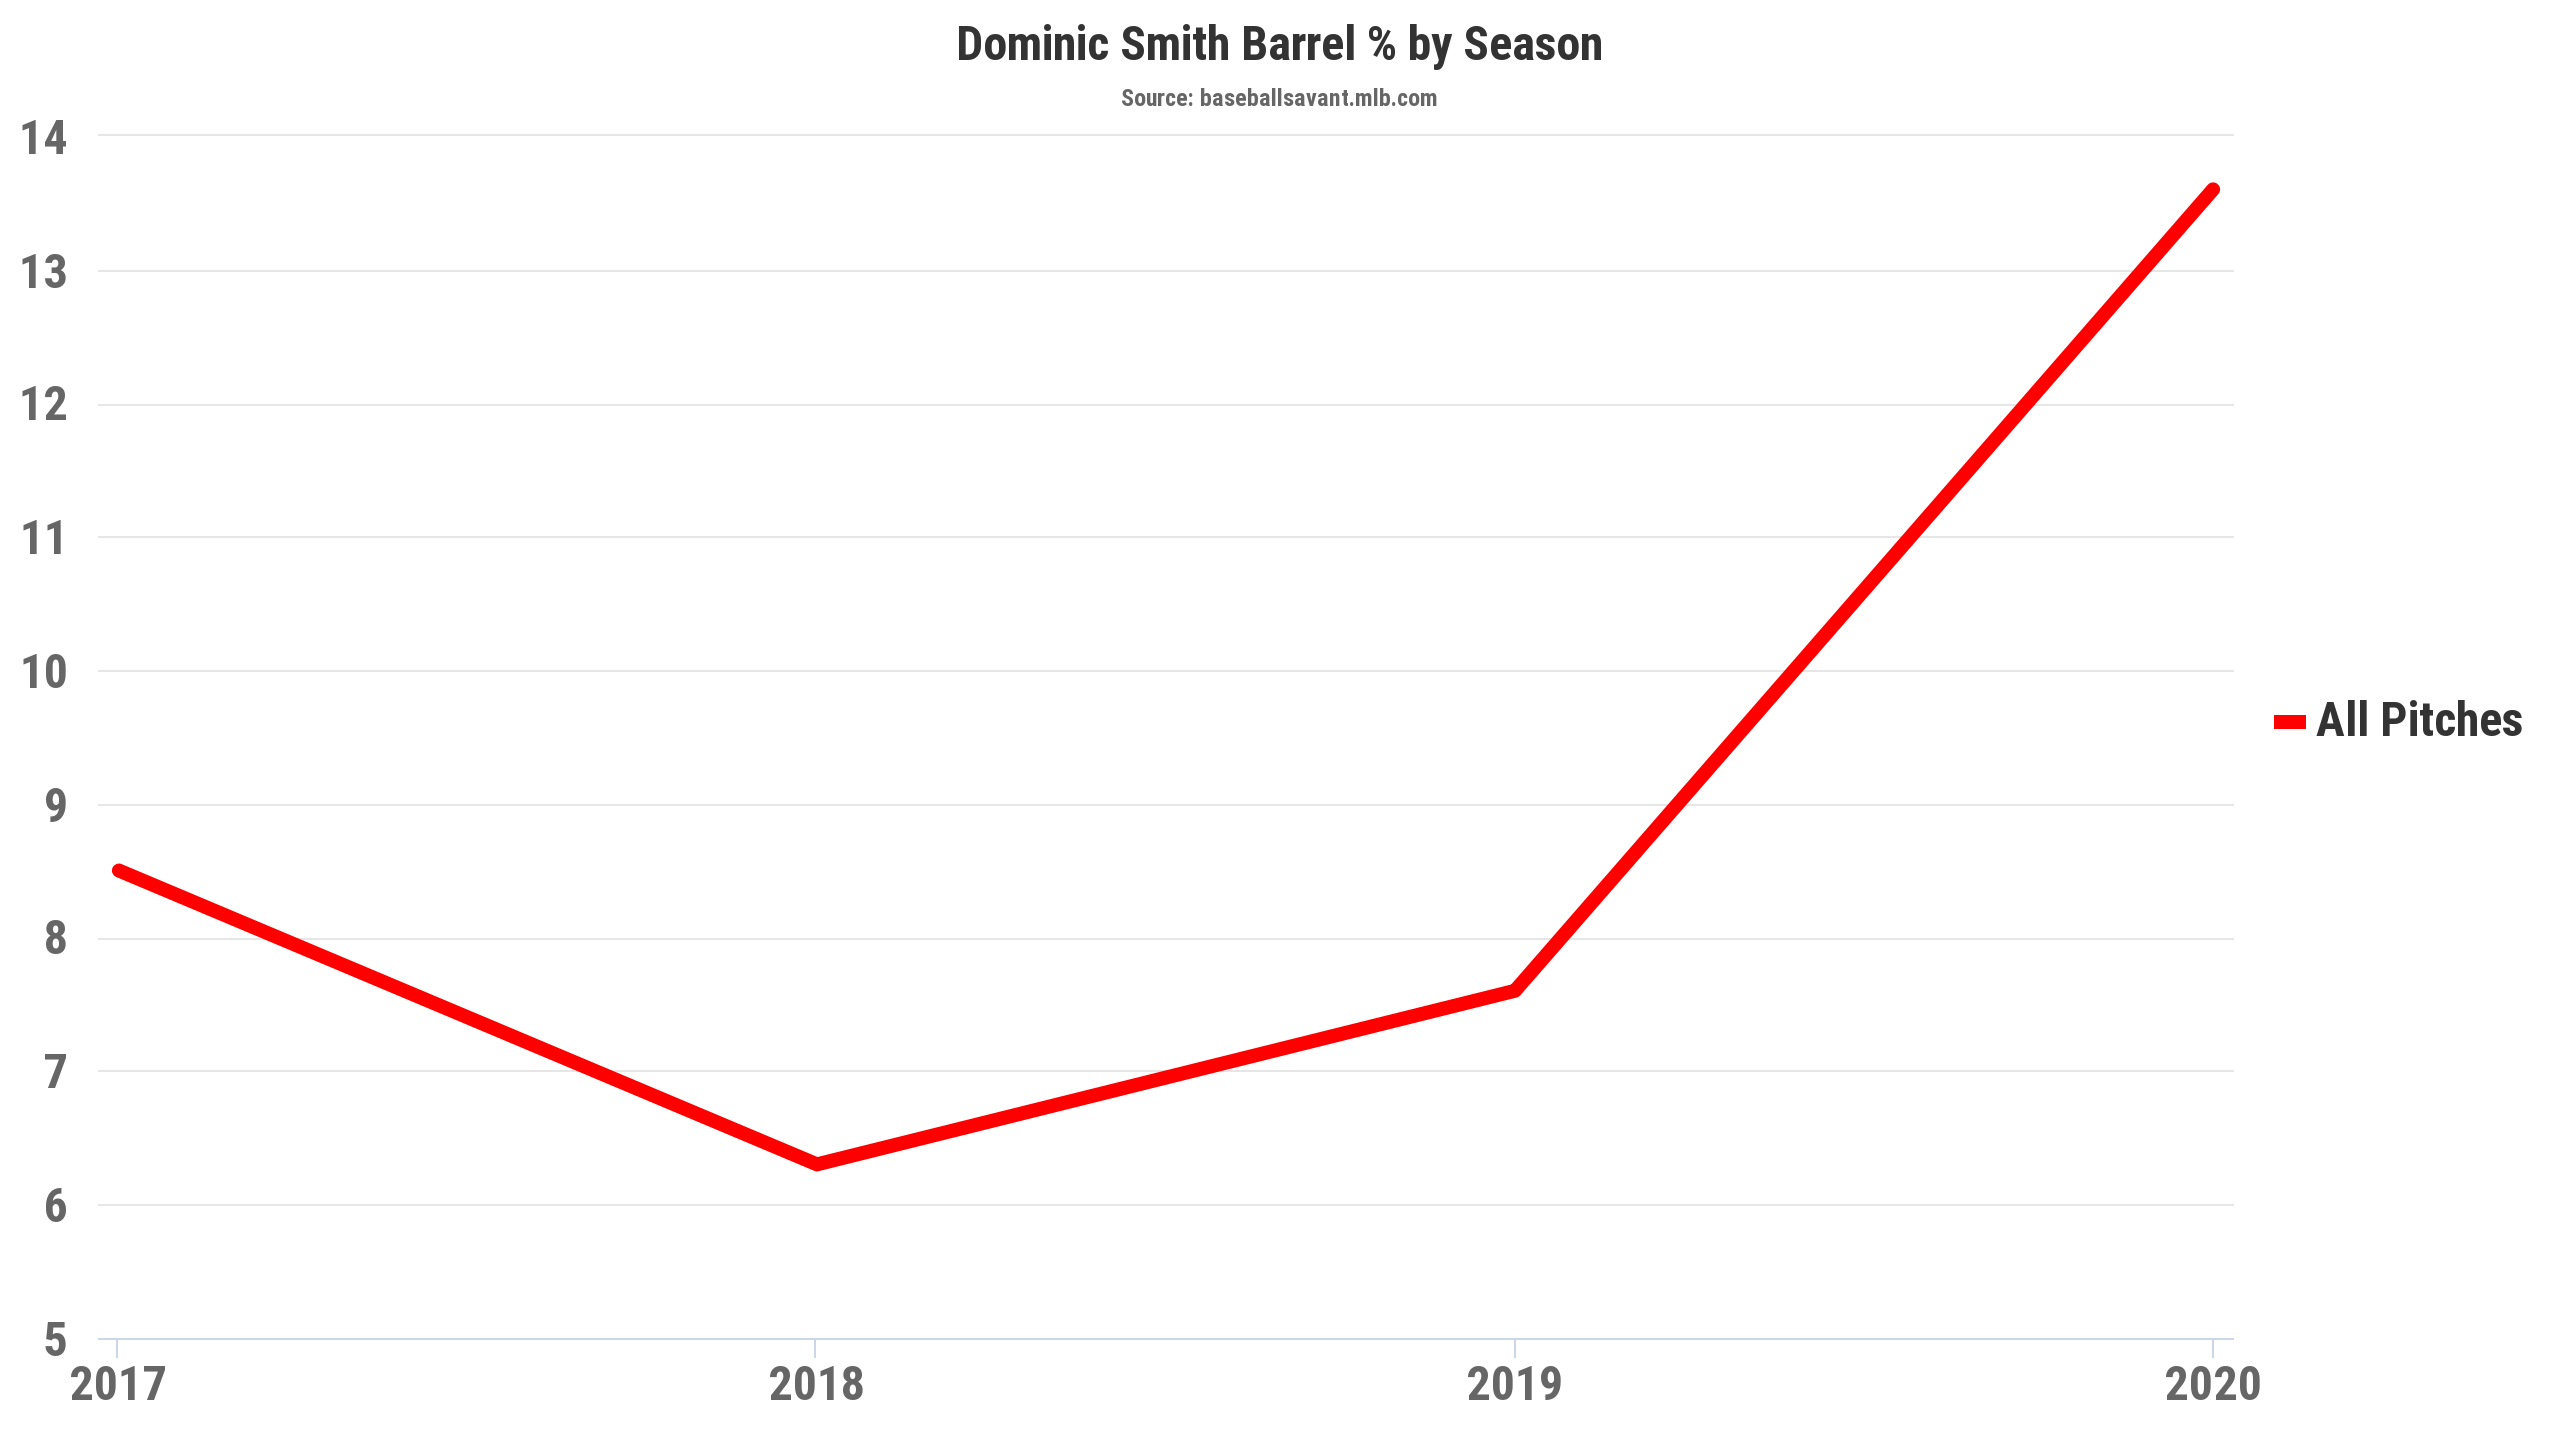 Dominic Smith Barrels